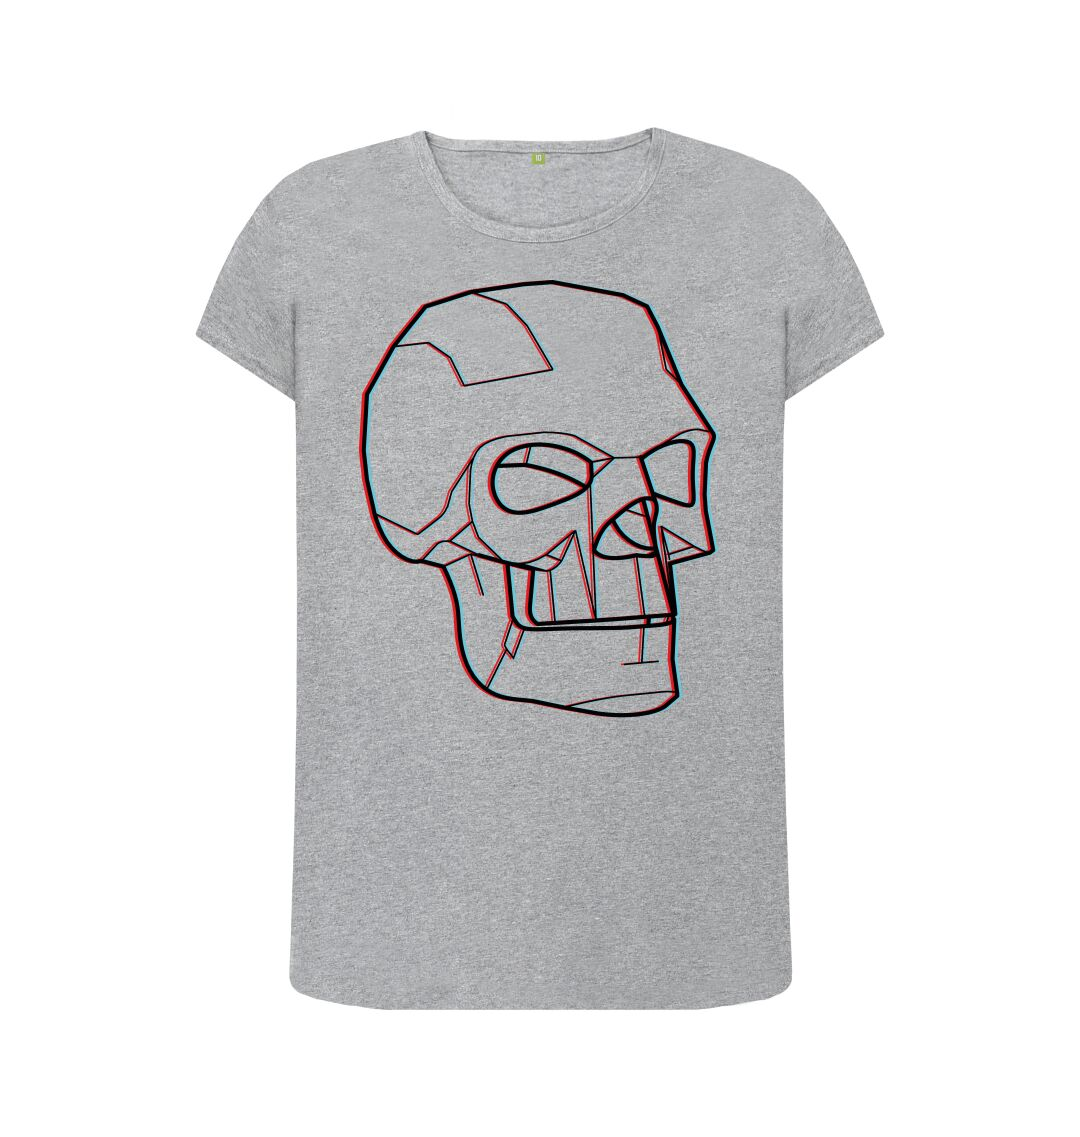 Spirit Skull Glitch T-shirt (female)